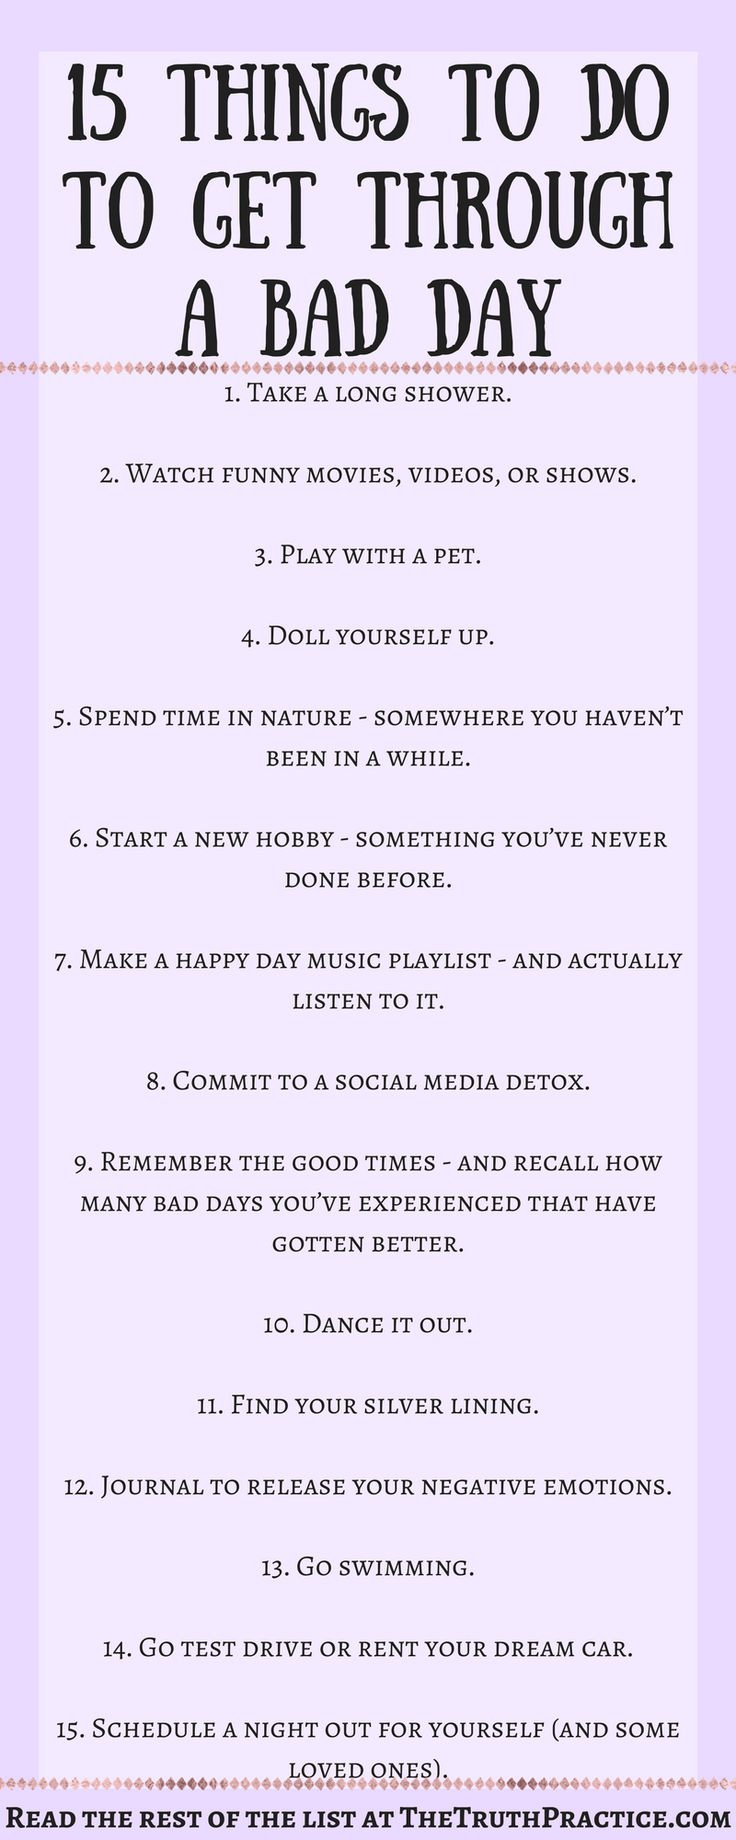 CLICK THE PIN FOR ALL 25 Ways To Get Through a Bad Day. Learn how to turn negativity around, and how to make your bad day a beautiful one with these 25 positivity tips.